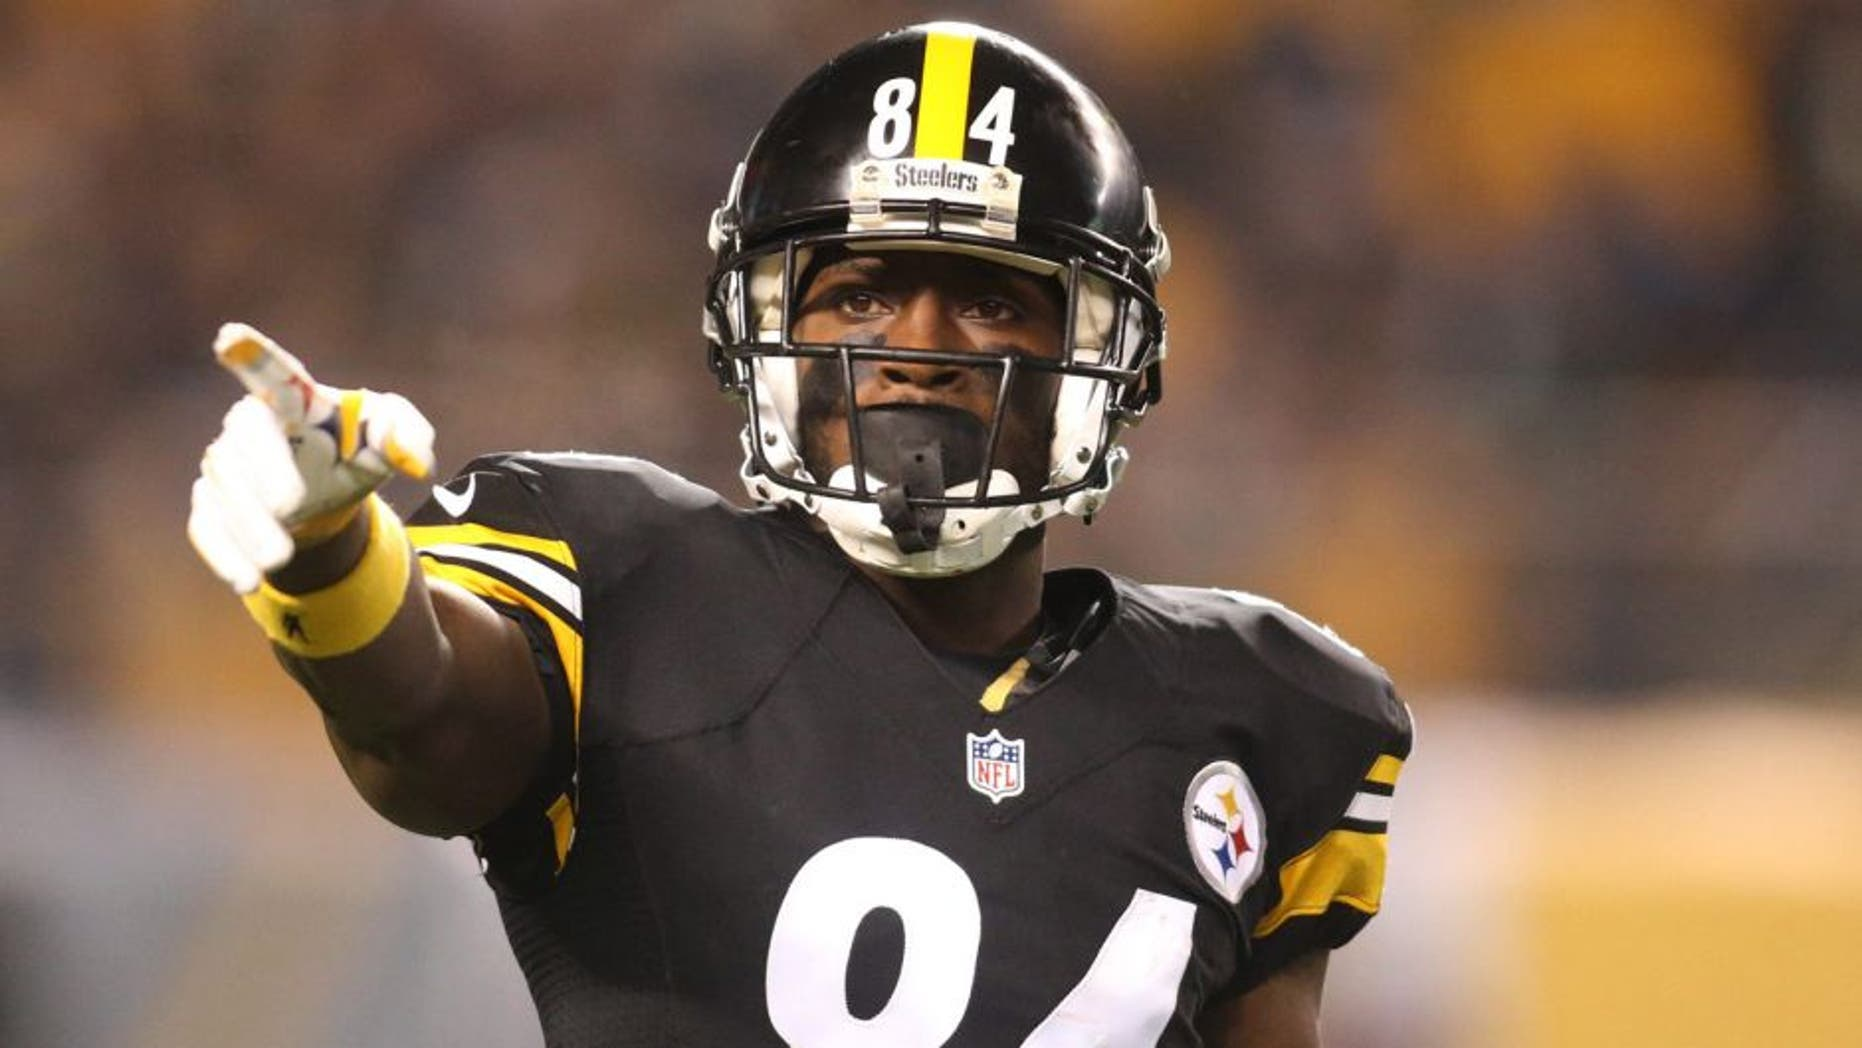 Dec 6, 2015; Pittsburgh, PA, USA; Pittsburgh Steelers wide receiver Antonio Brown (84) gestures at the line of scrimmage against the Indianapolis Colts during the second quarter at Heinz Field. Mandatory Credit: Charles LeClaire-USA TODAY Sports